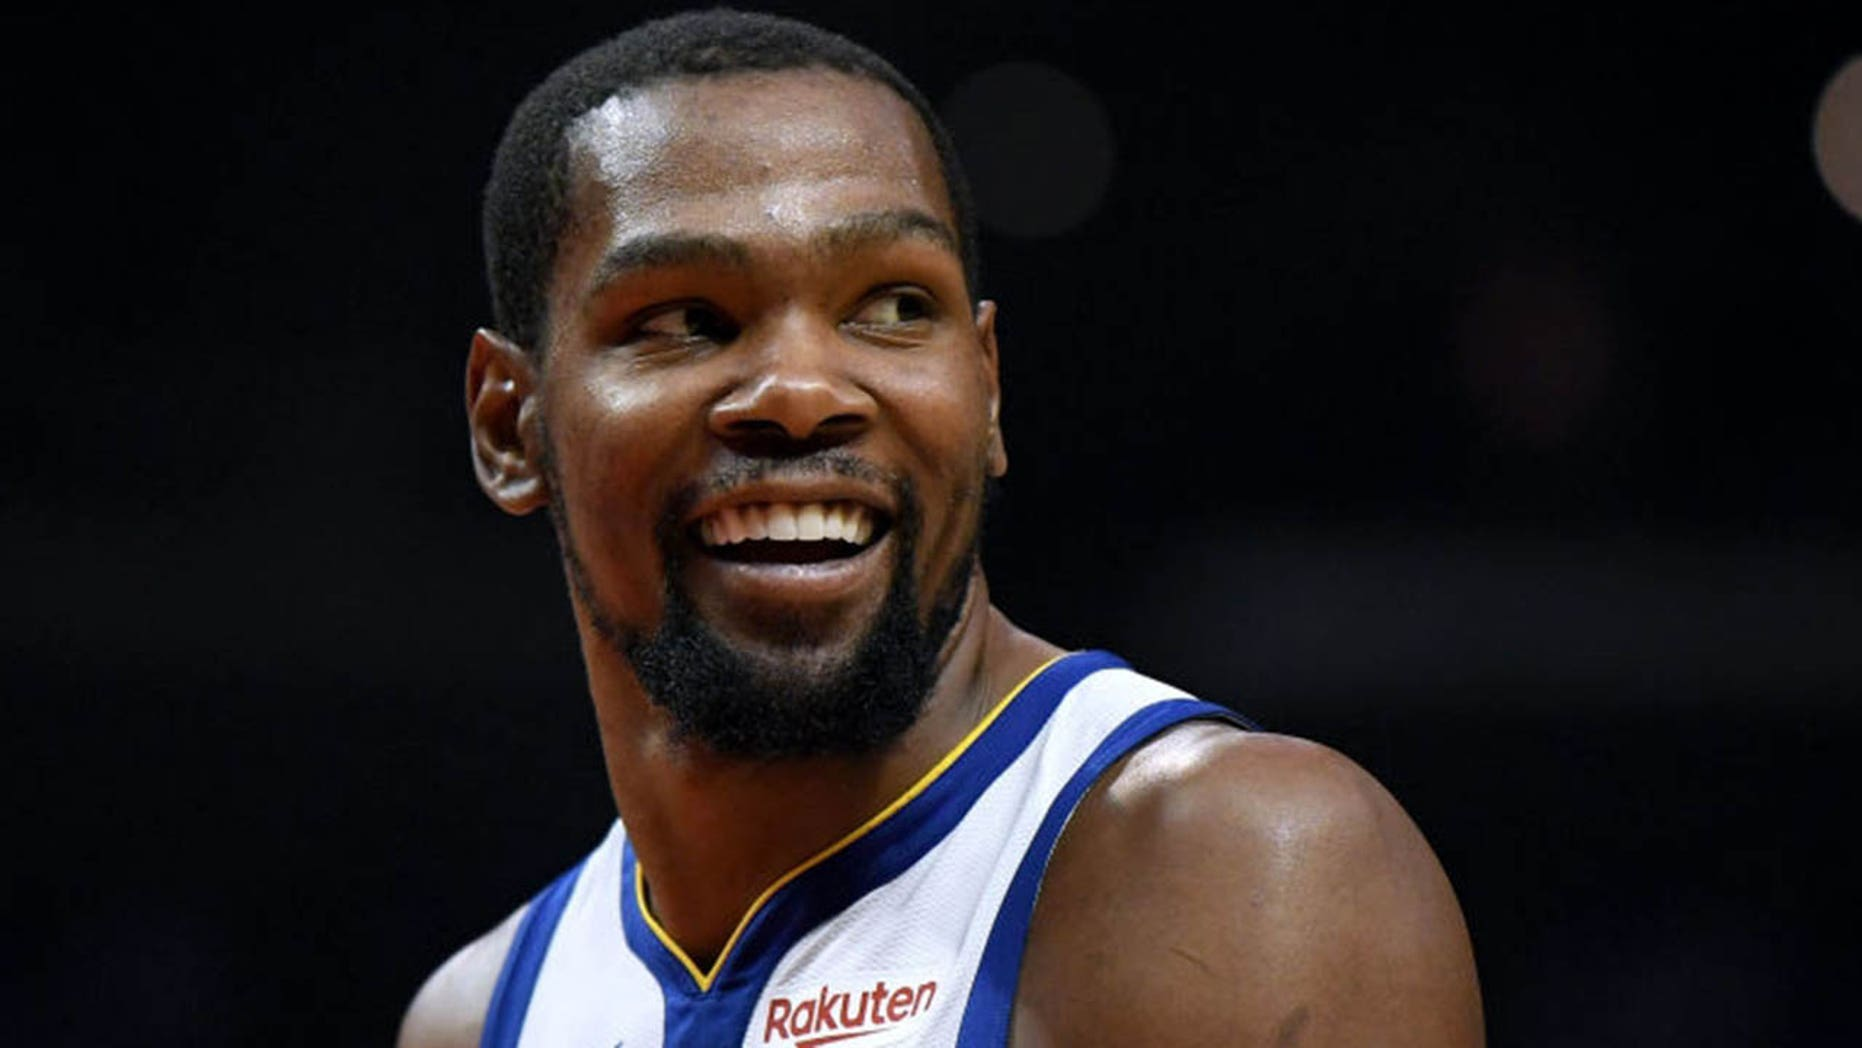 Kevin Durant #35 of the Golden State Warriors smiles at his bench in a 129-110 win over the LA Clippers during Game Six of Round One of the 2019 NBA Playoffs at Staples Center on April 26, 2019 in Los Angeles, California. (Photo by Harry How/Getty Images)